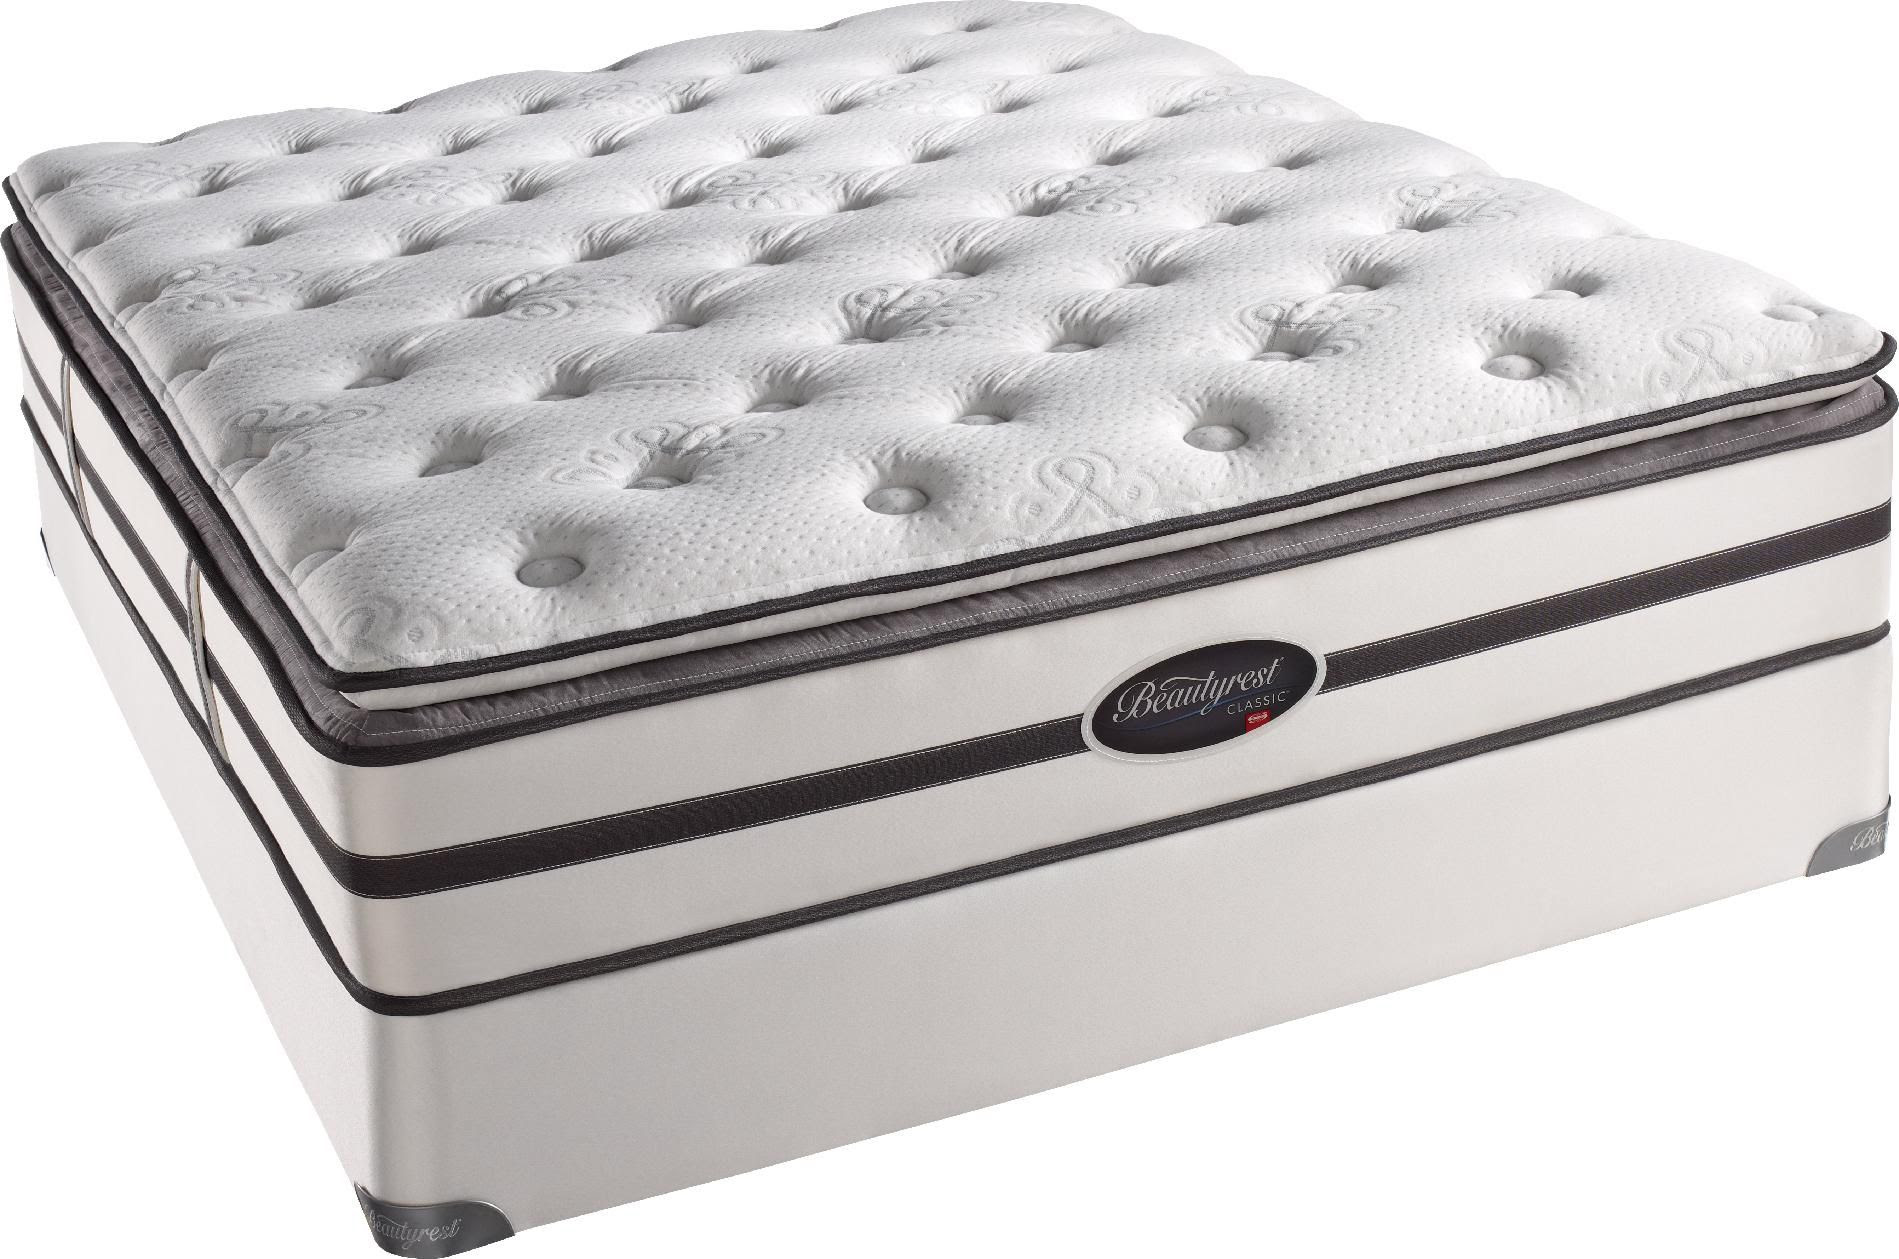 Simmons Beautyrest Pillow Top Mattress C Shld